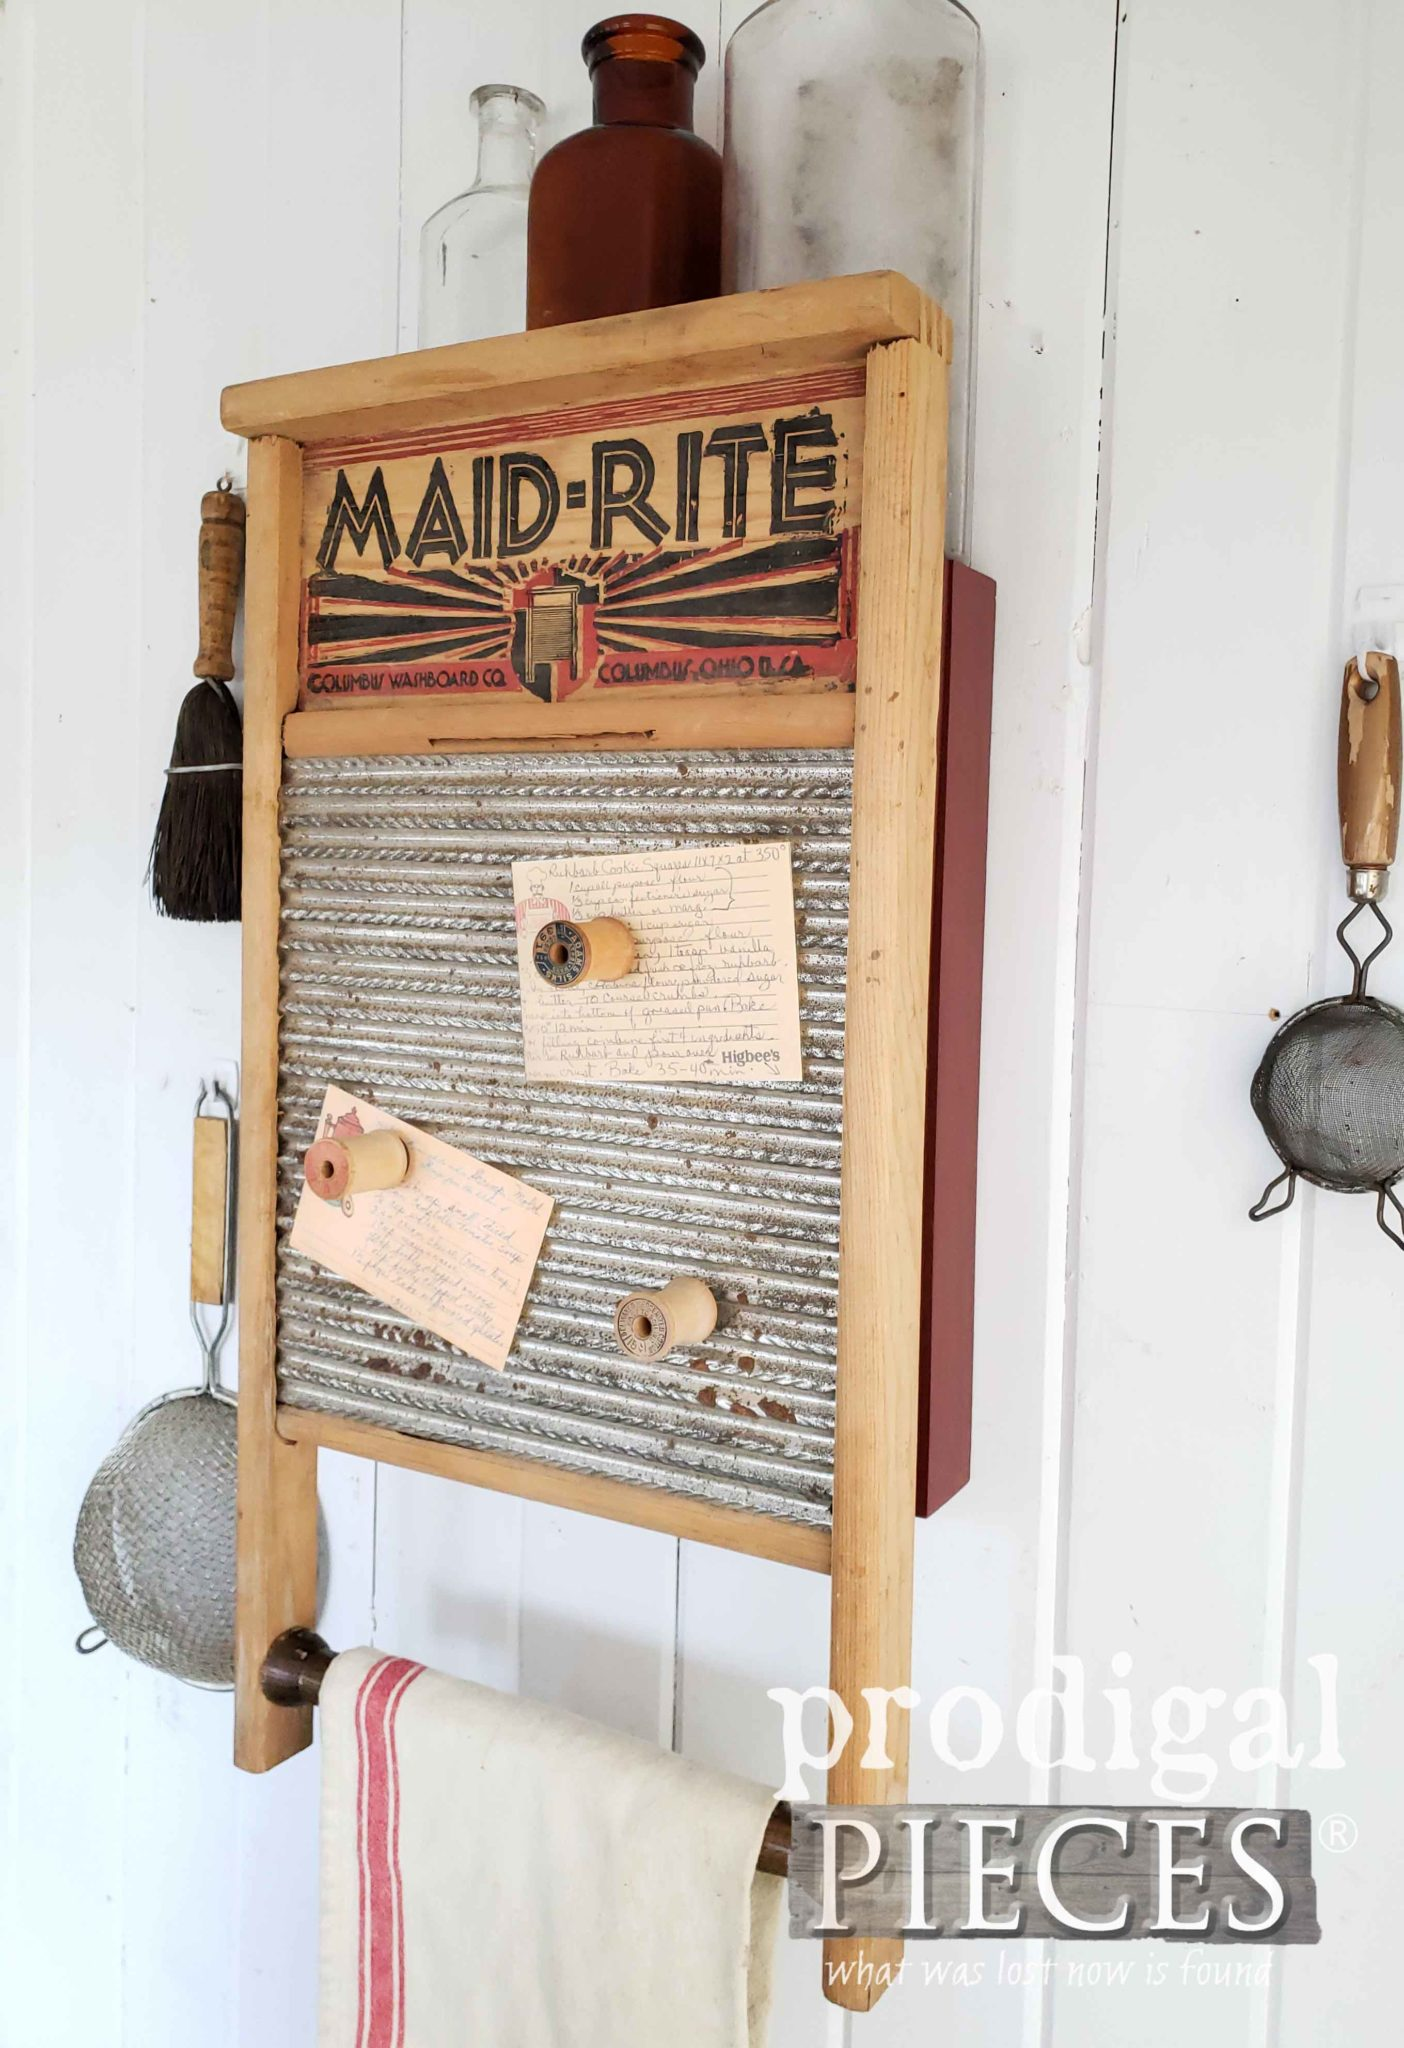 Upcycled Washboard Cupboard with Hidden Storage for Kitchen, Laundry, Bath, and more   by Larissa of Prodigal Pieces   prodigalpieces.com #prodigalpieces #diy #handmade #farmhouse #homedecor #vintage